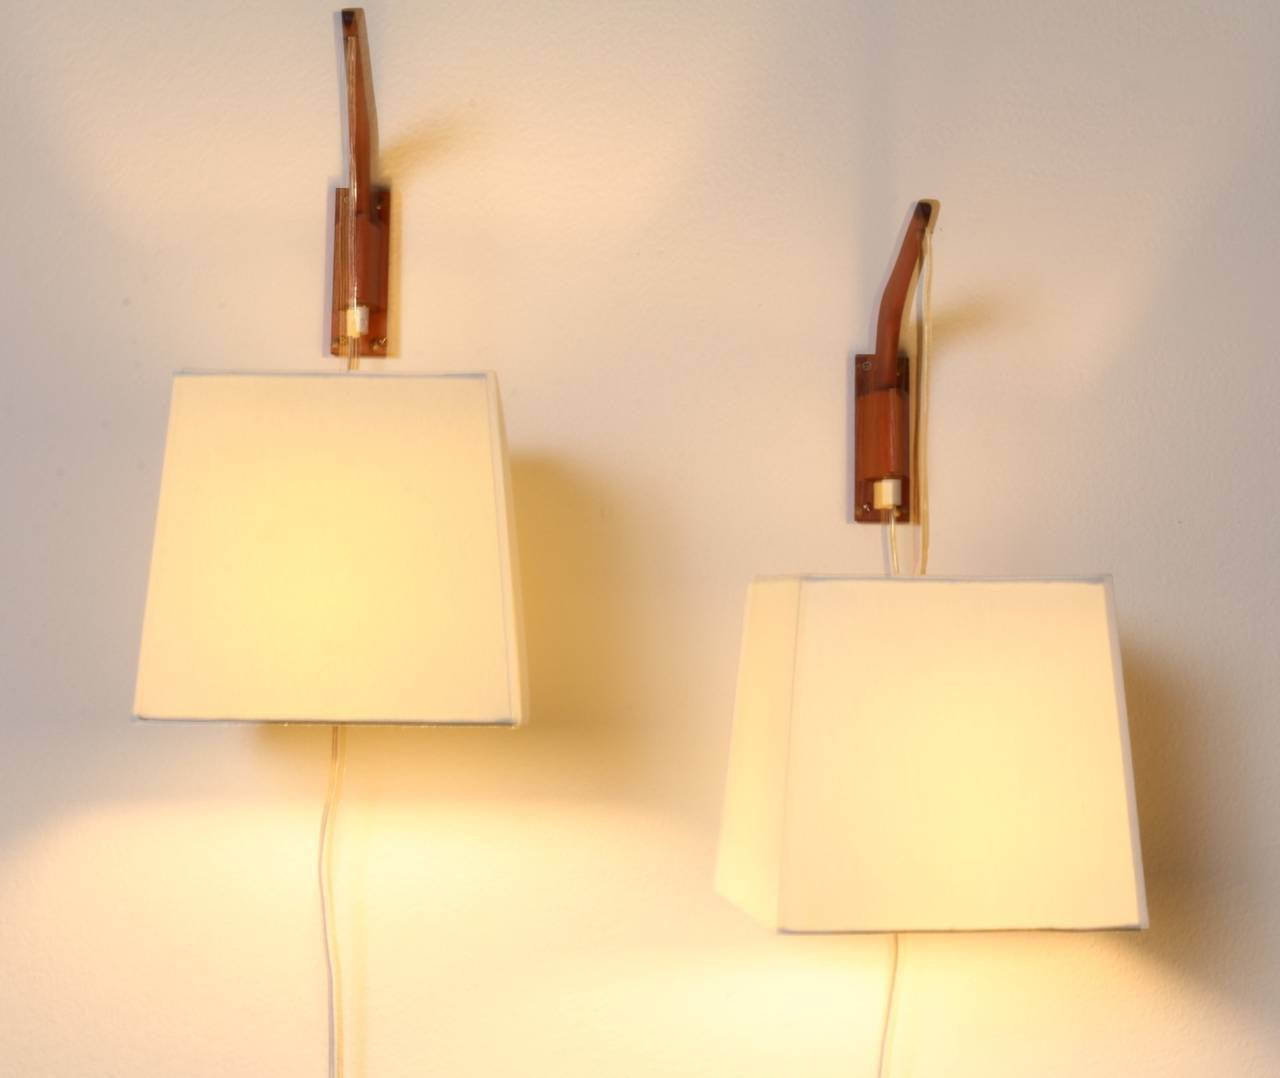 Danish Modern Hanging Lamps with Original Shades at 1stdibs